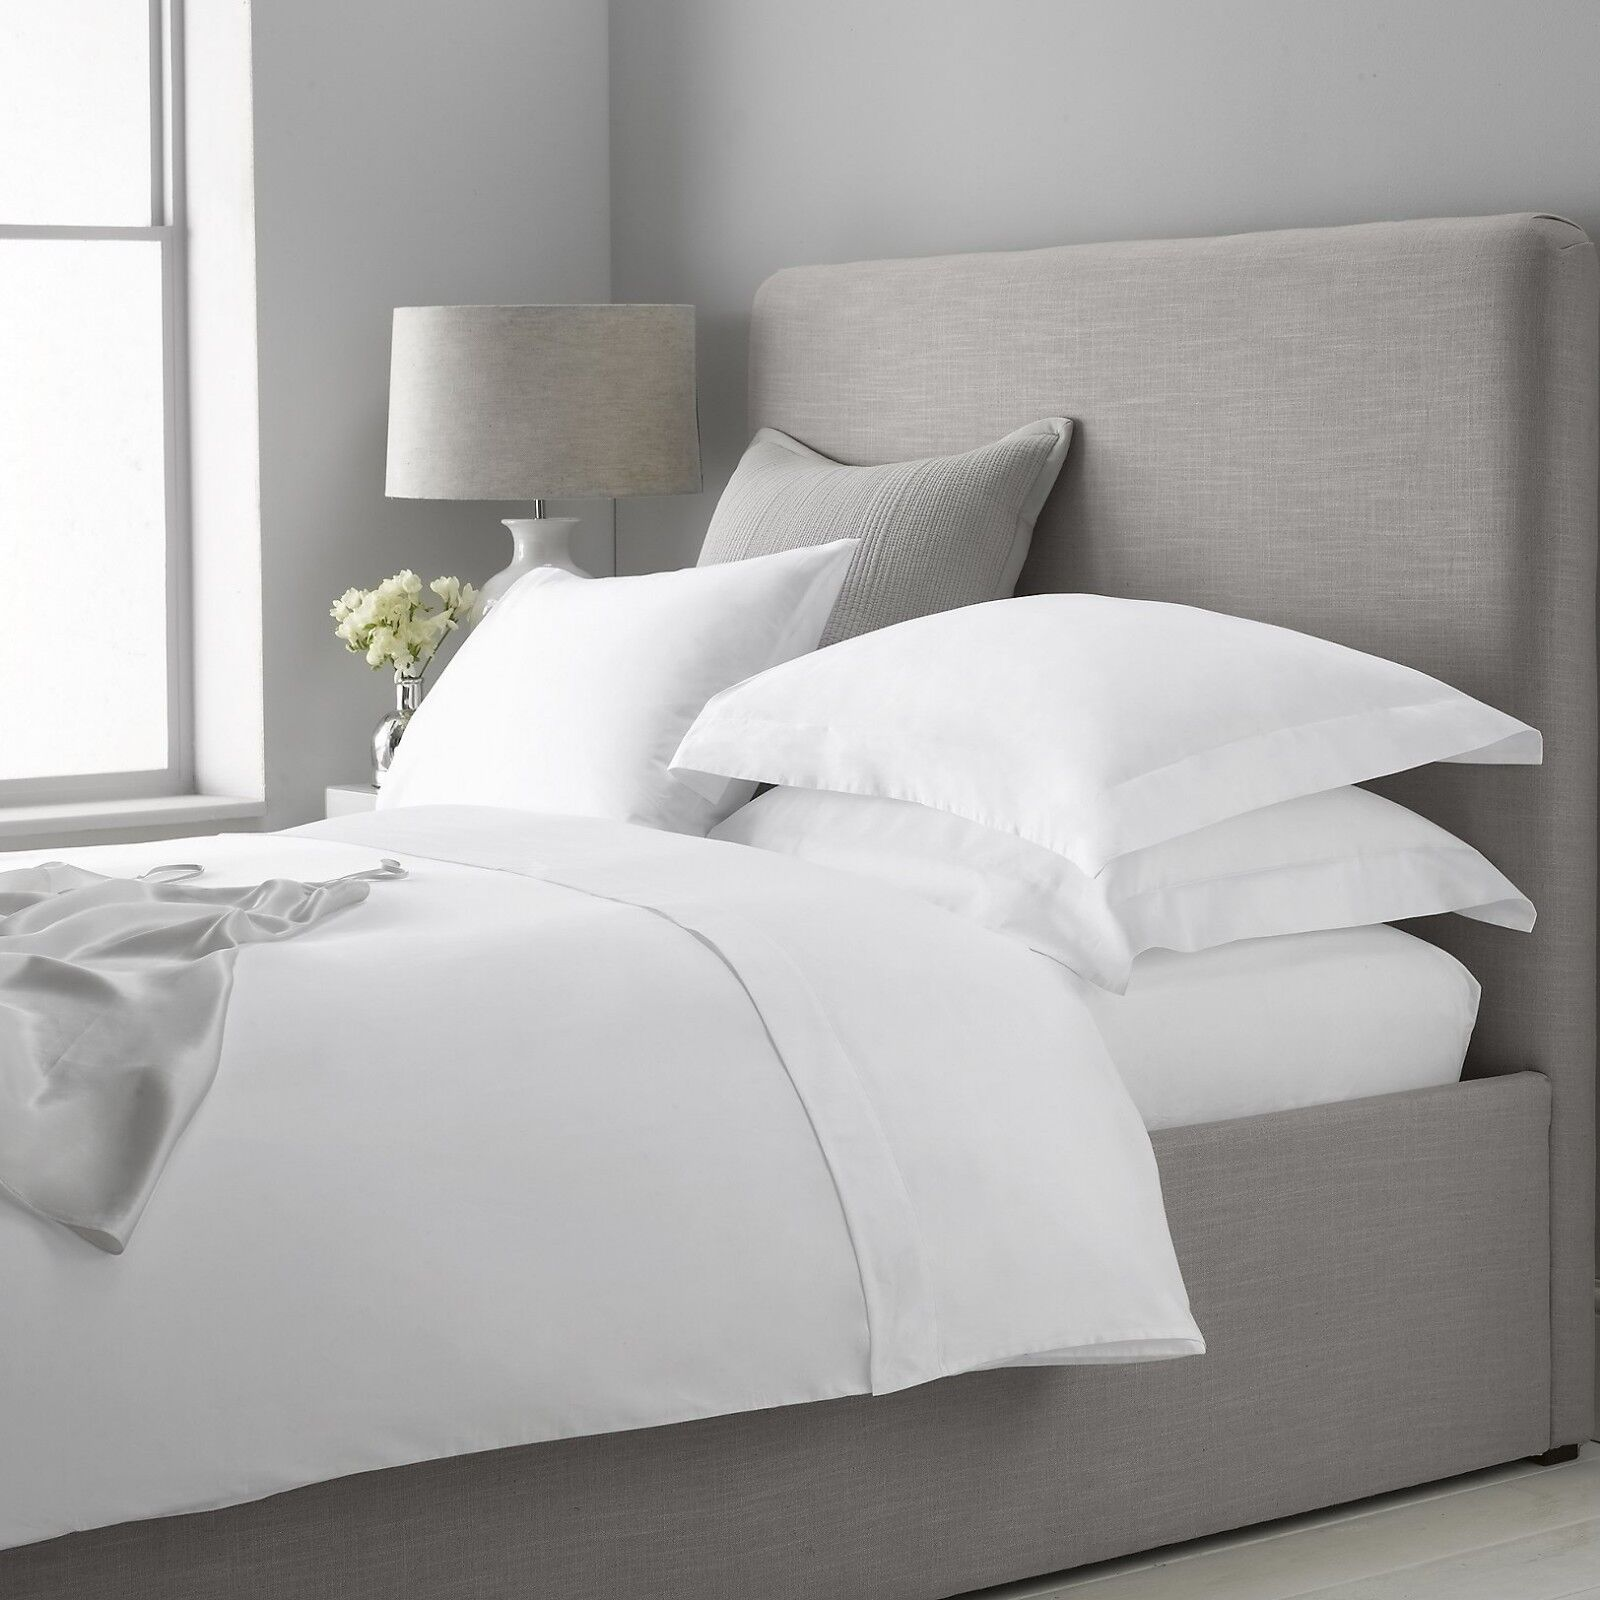 NEW SUPER KING PURE EGYPTIAN COTTON FITTED SHEET IN PURE Weiß 800 THREAD COUNT